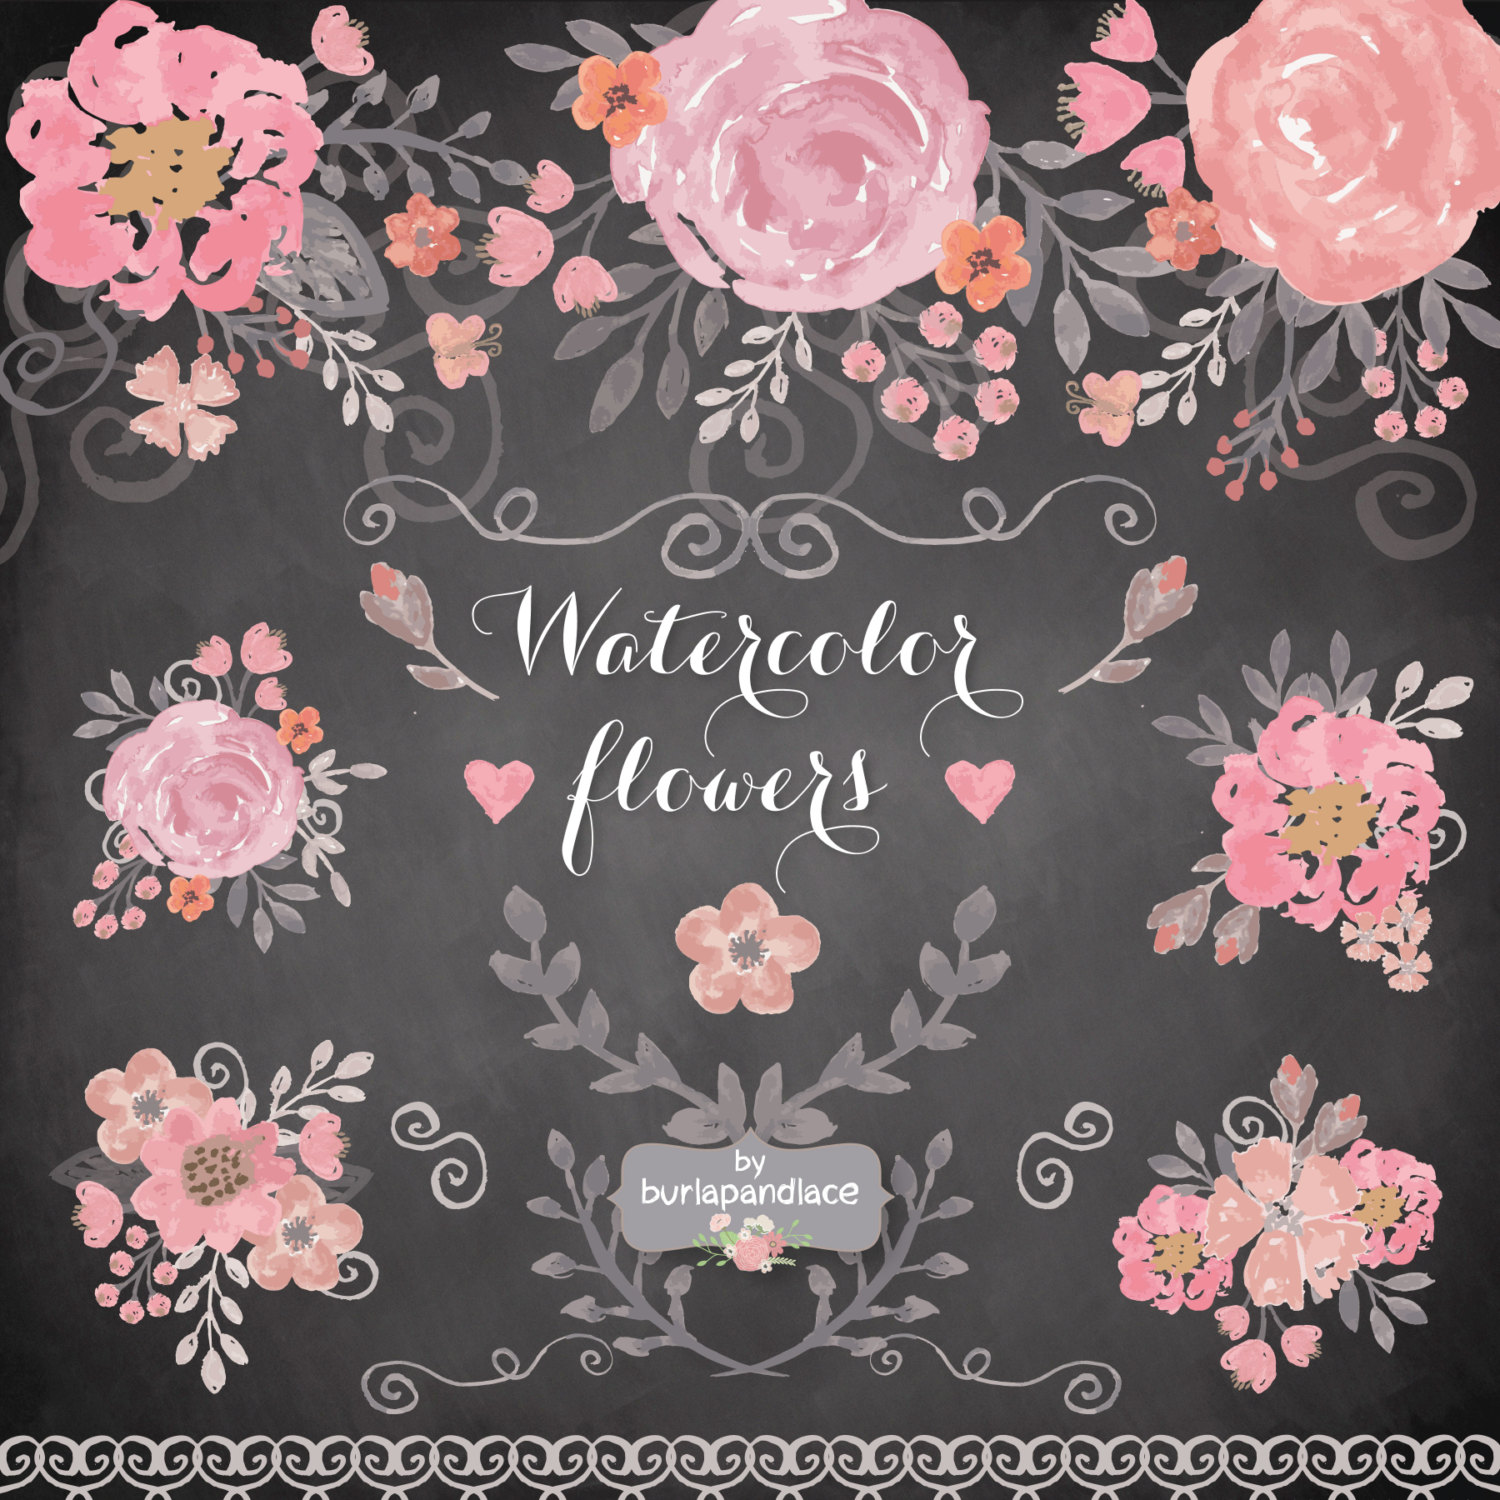 Peony clipart wedding invitation #14